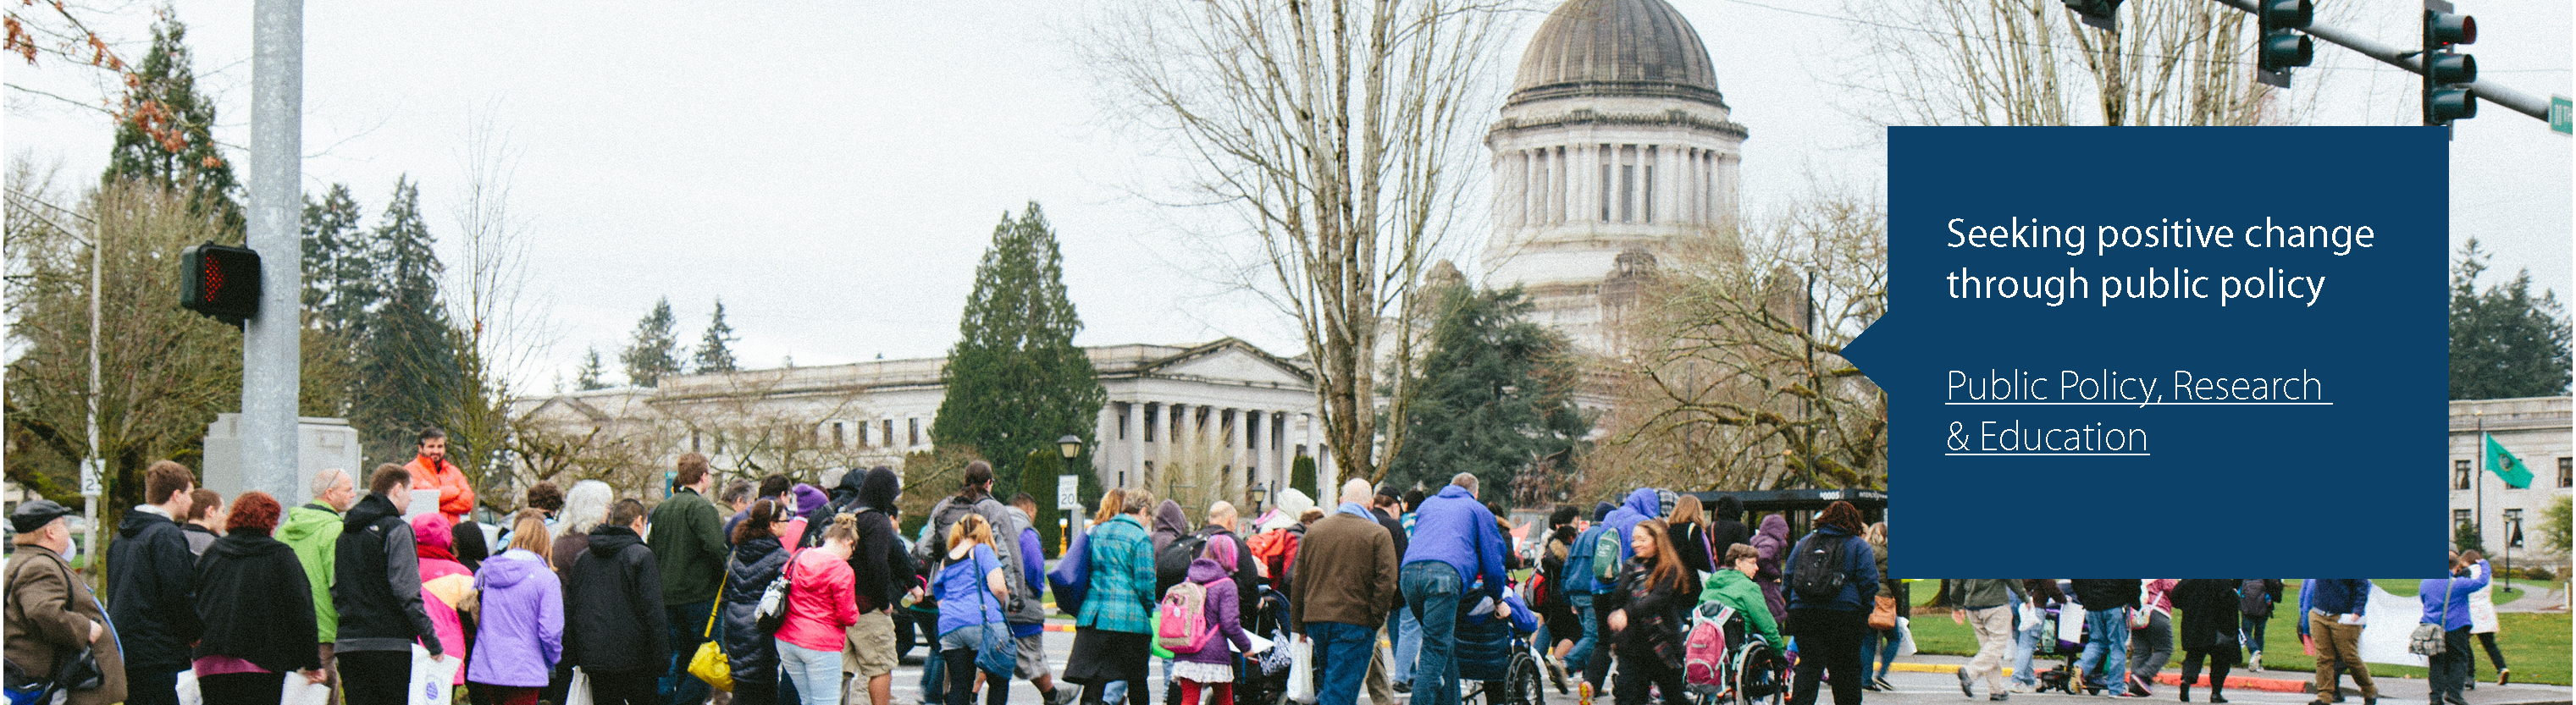 Seeking positive change through public policy. Public Policy Research, Analysis & Education Program. A group of people cross the street in Olympia, WA in front of the Capitol building.